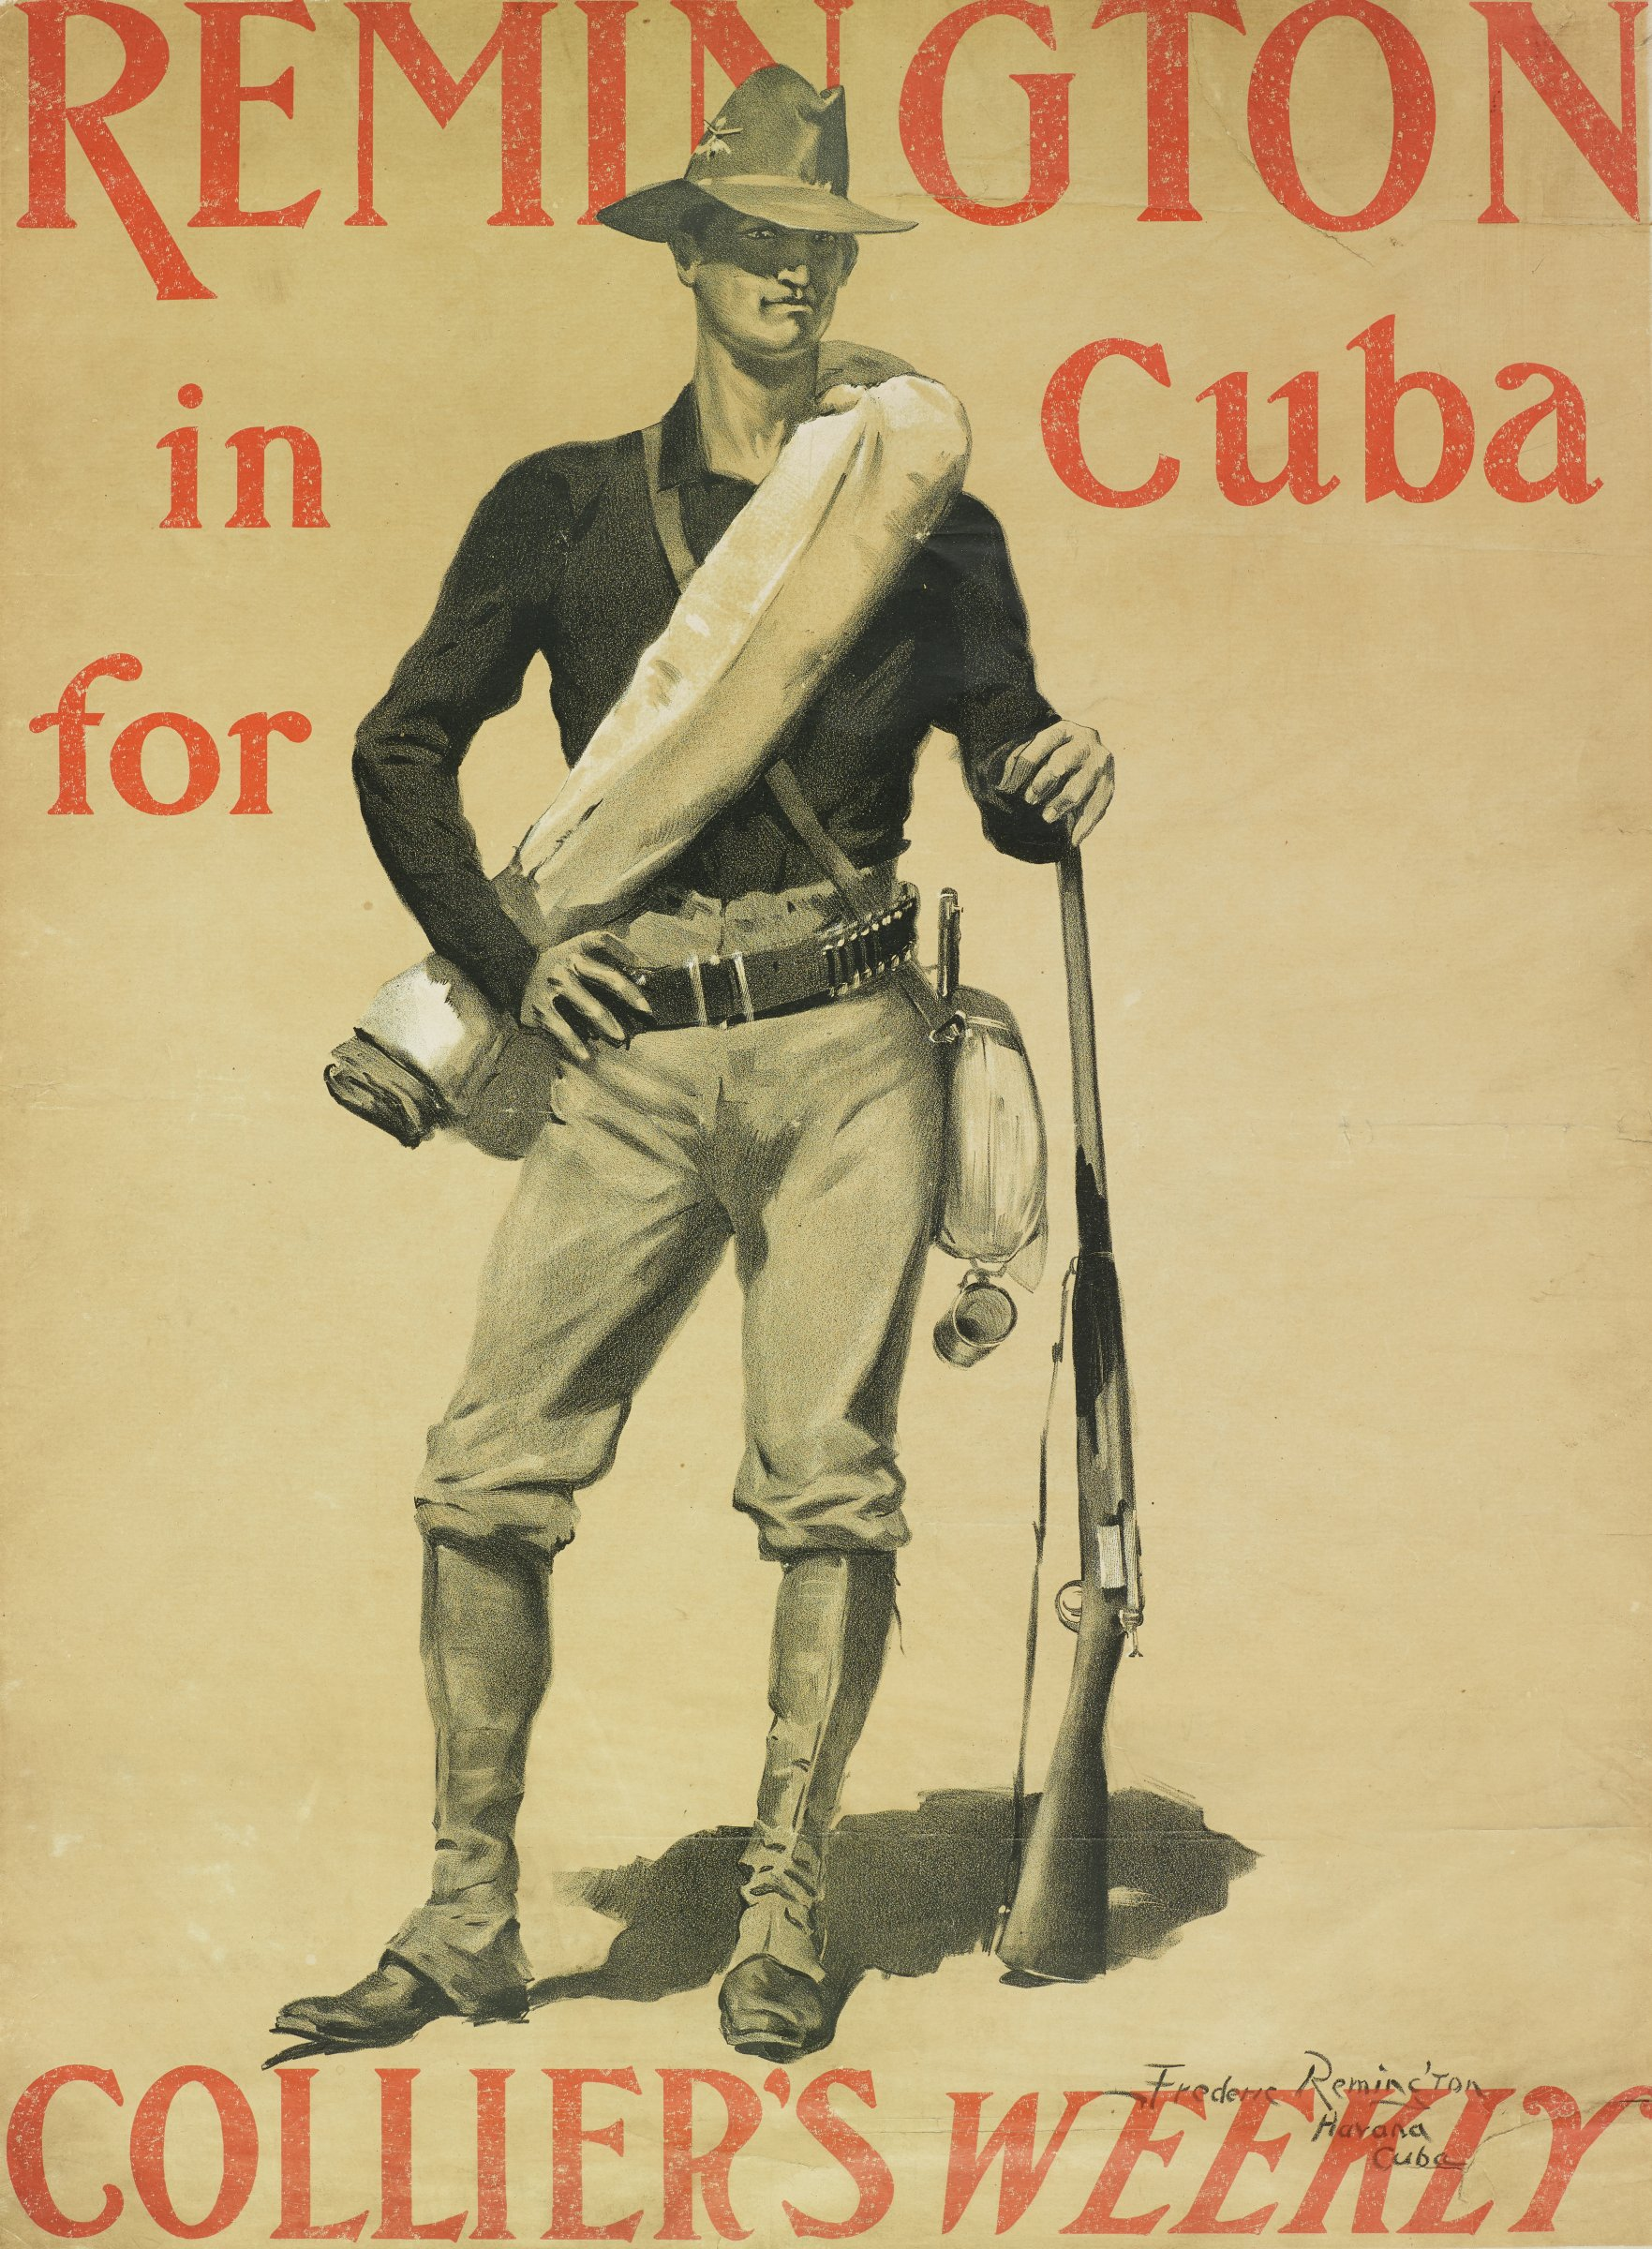 """Remington In Cuba for """"Collier's Weekly"""", Frederic Remington, lithograph"""